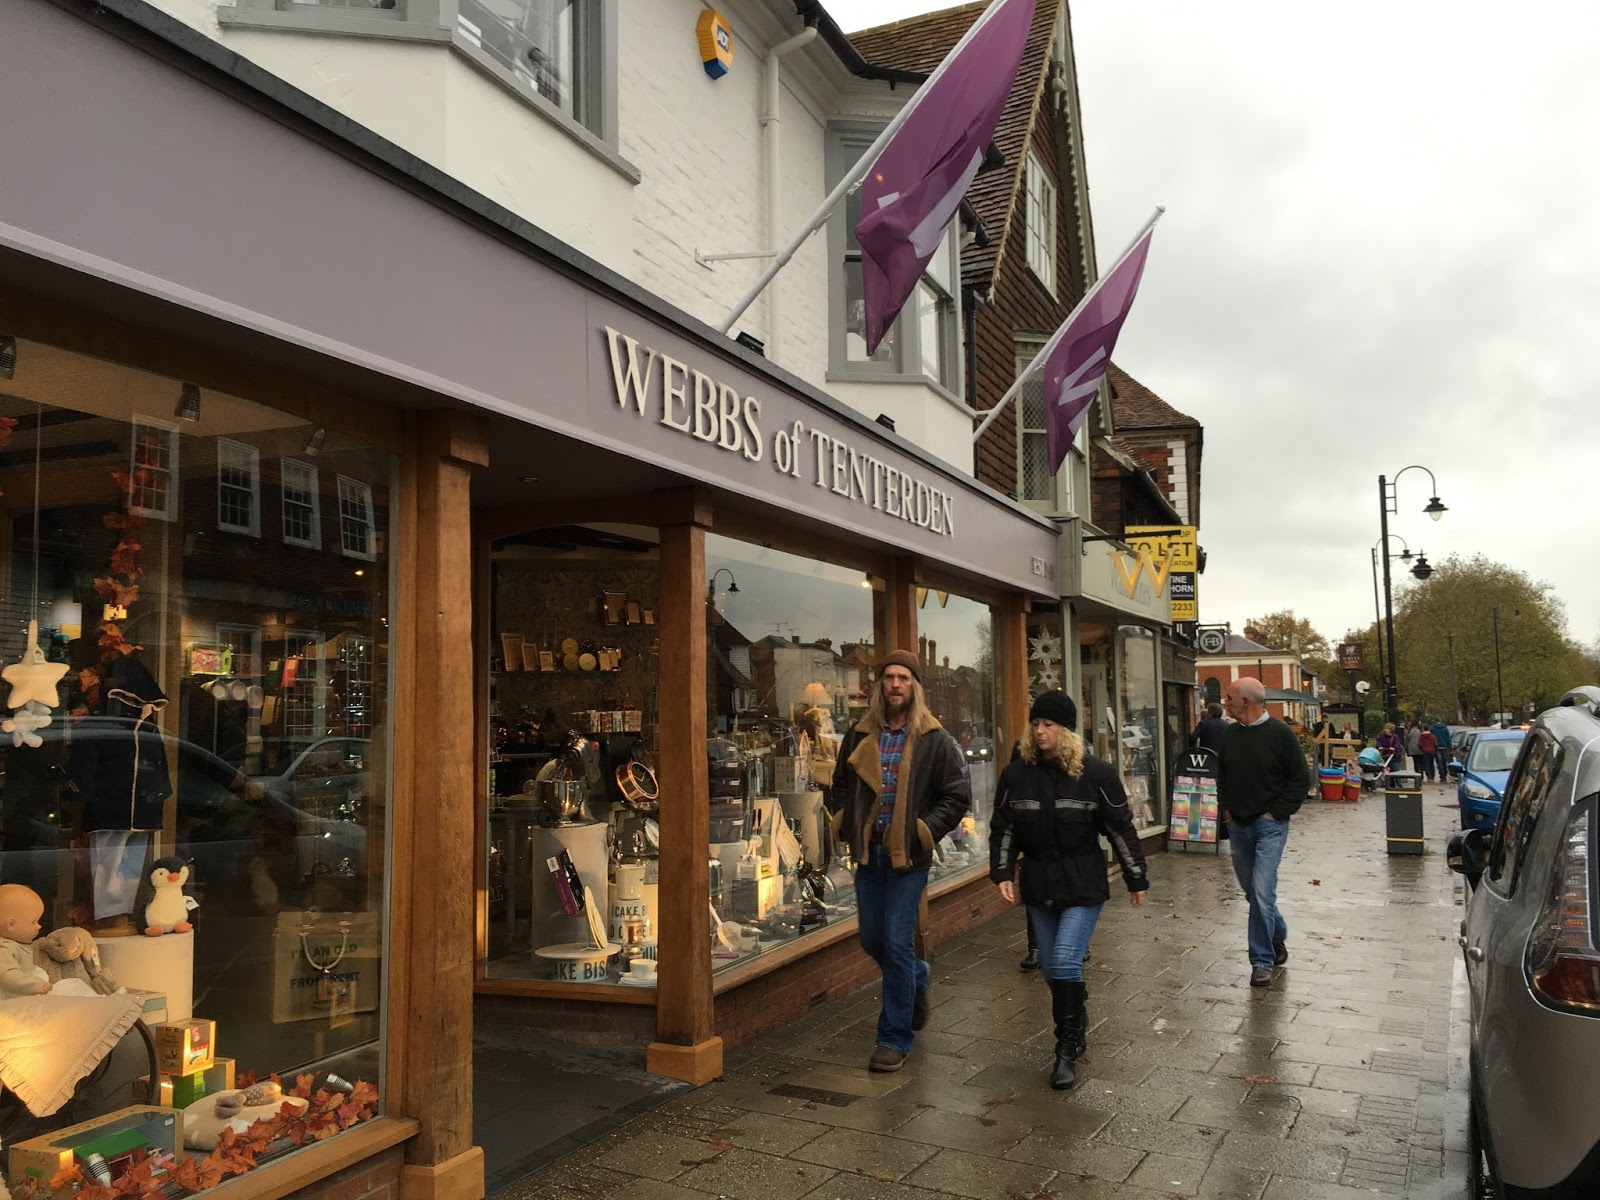 Tenterden has some very classy home and furnishing shops. Probably the best for browsing is Tenterden House Interiors - much sumptuous swag and drapery ... & Tenterden - nice shops on a damp day